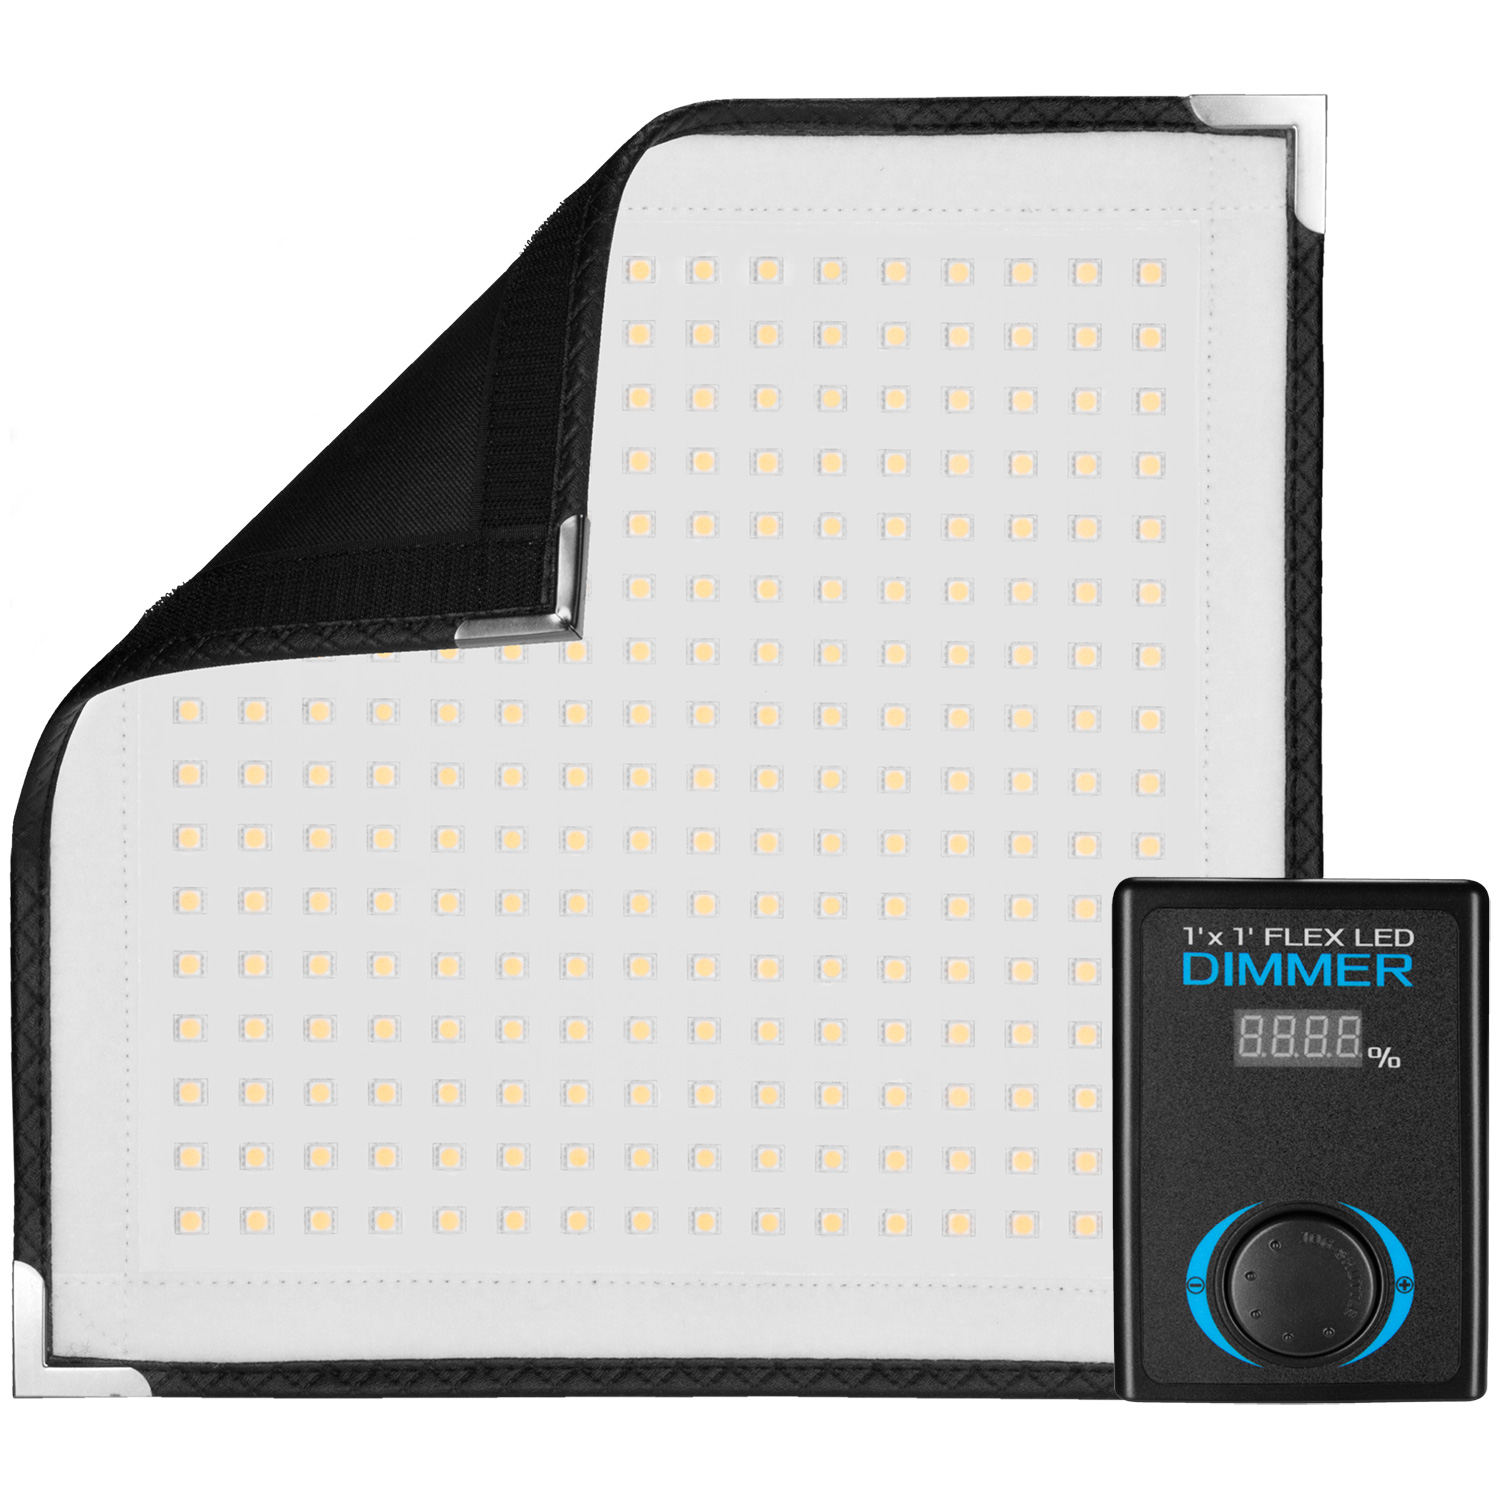 Original Flex Daylight LED Mat (1' x 1', US/CA Plug)